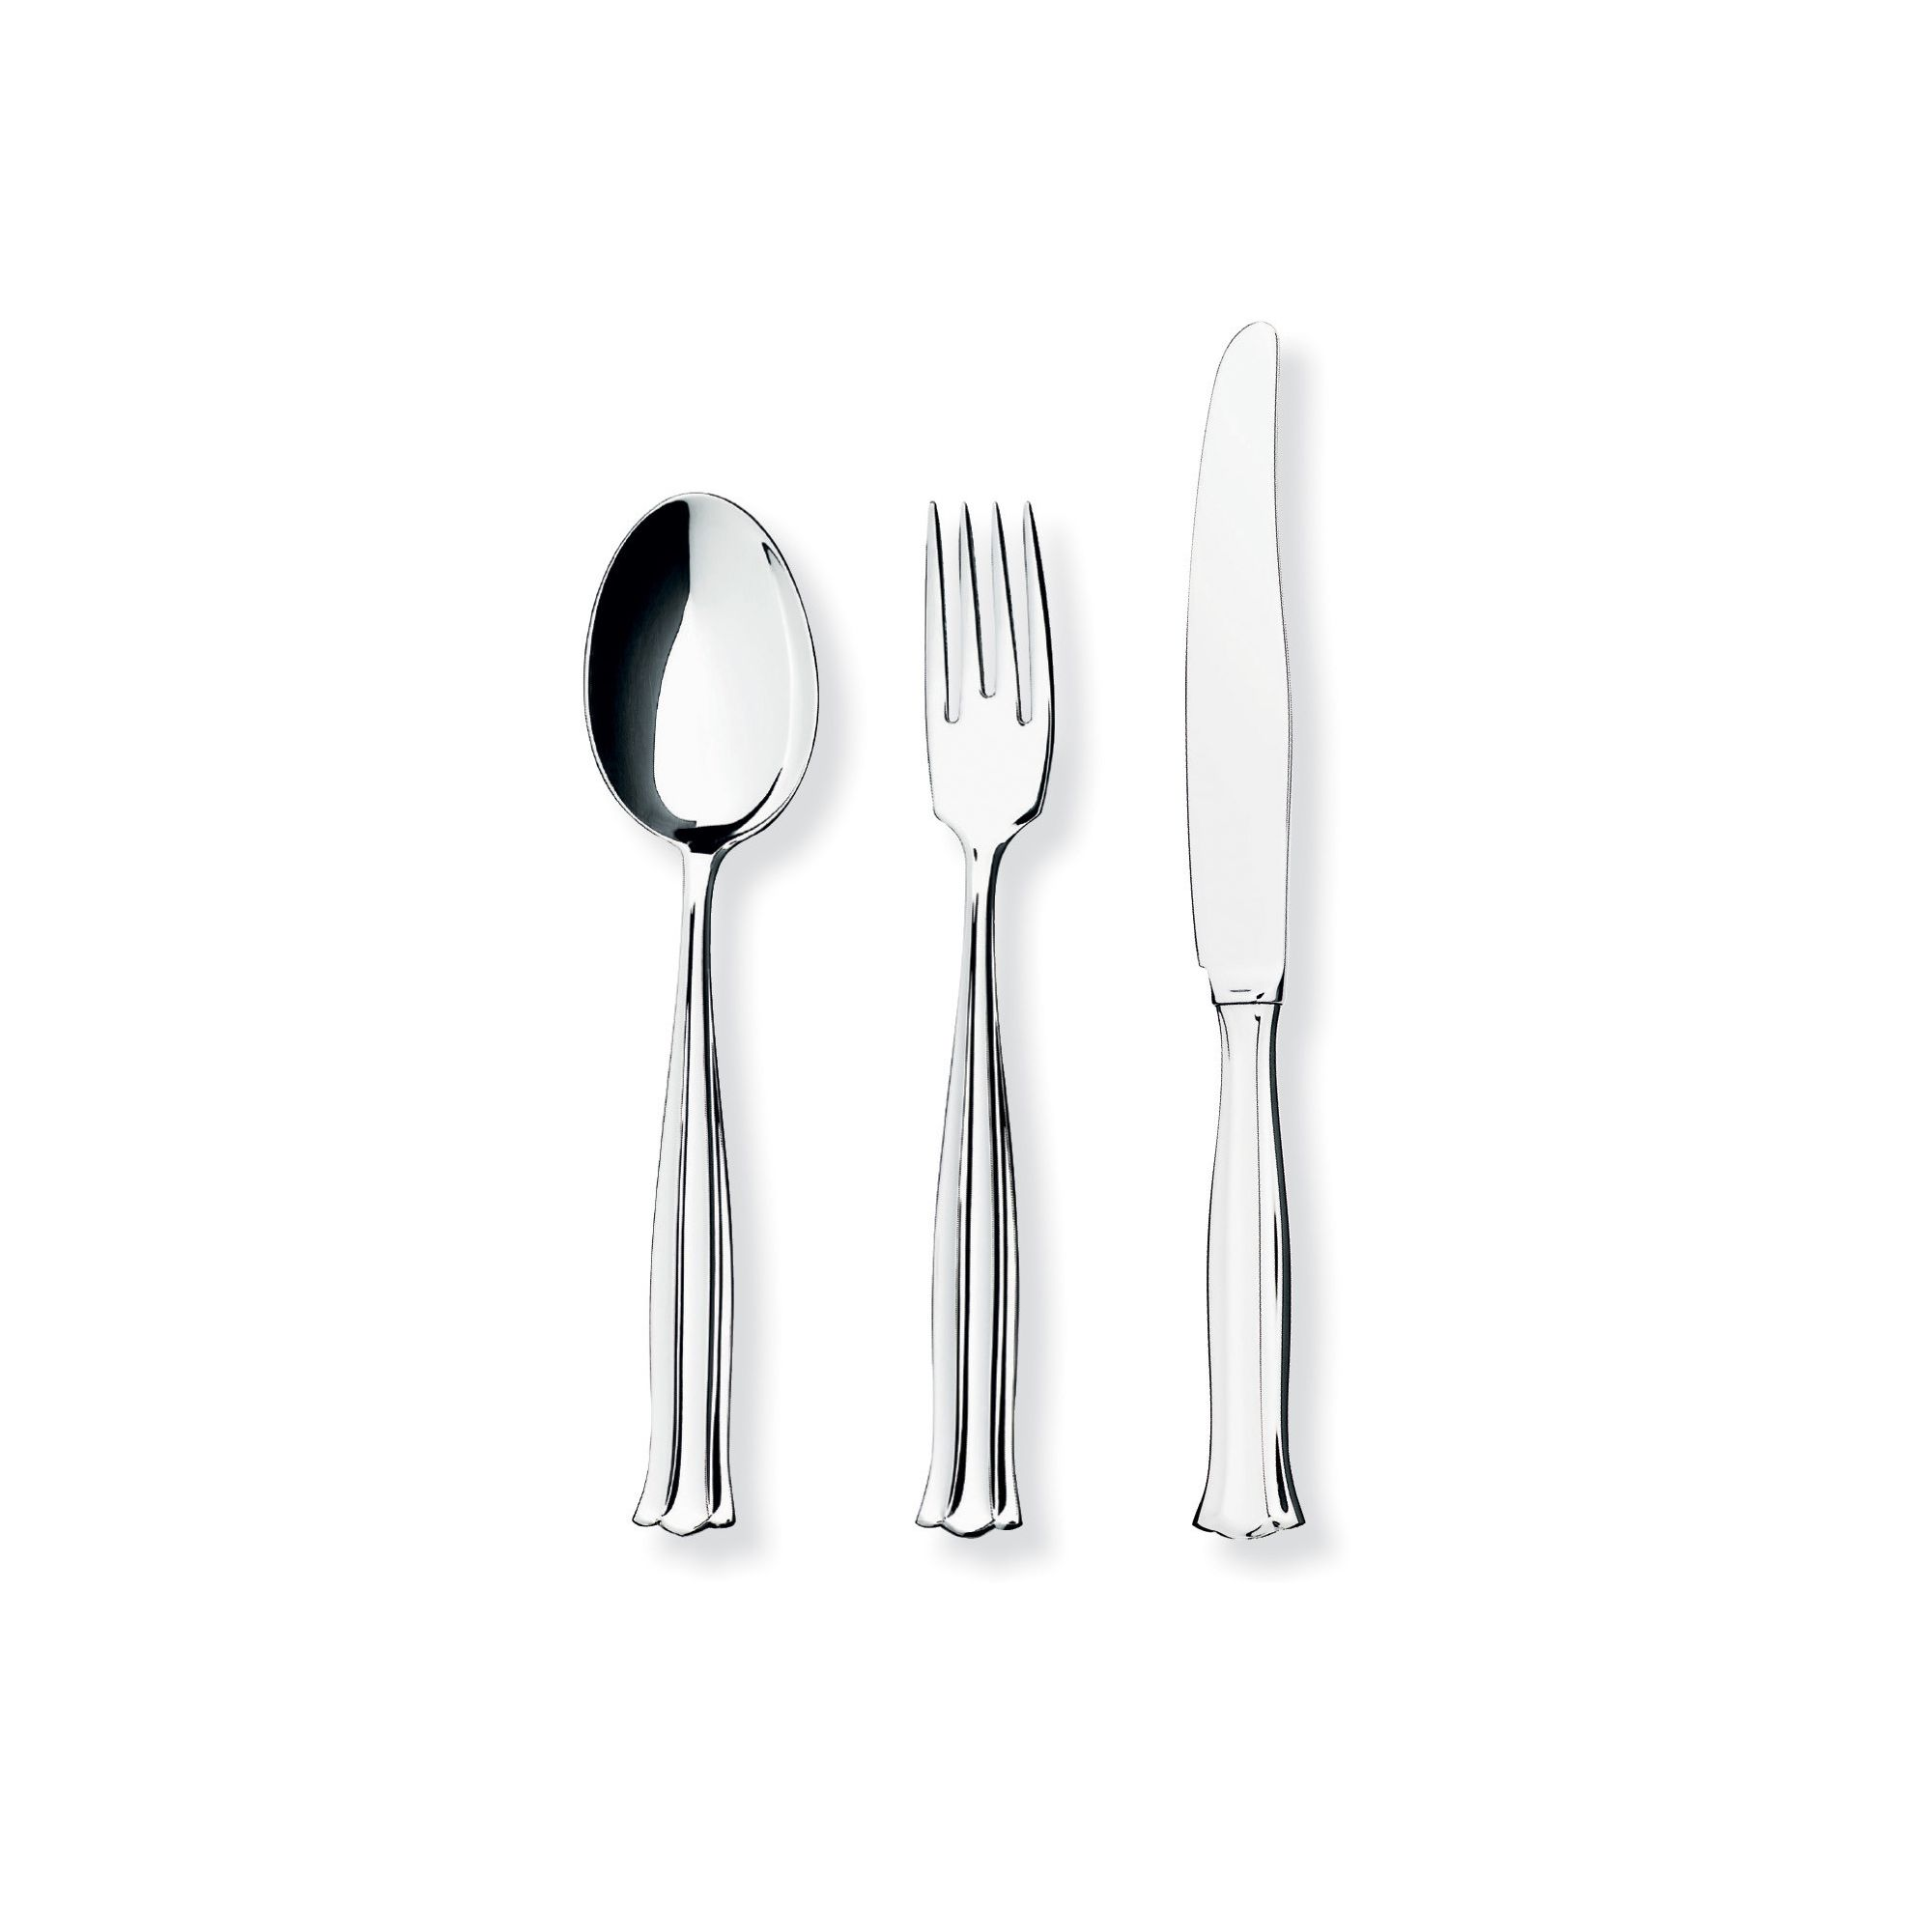 Mema/GAB Birgitta 12 Piece Silver Plated Cutlery Set 4 at Tescos Direct